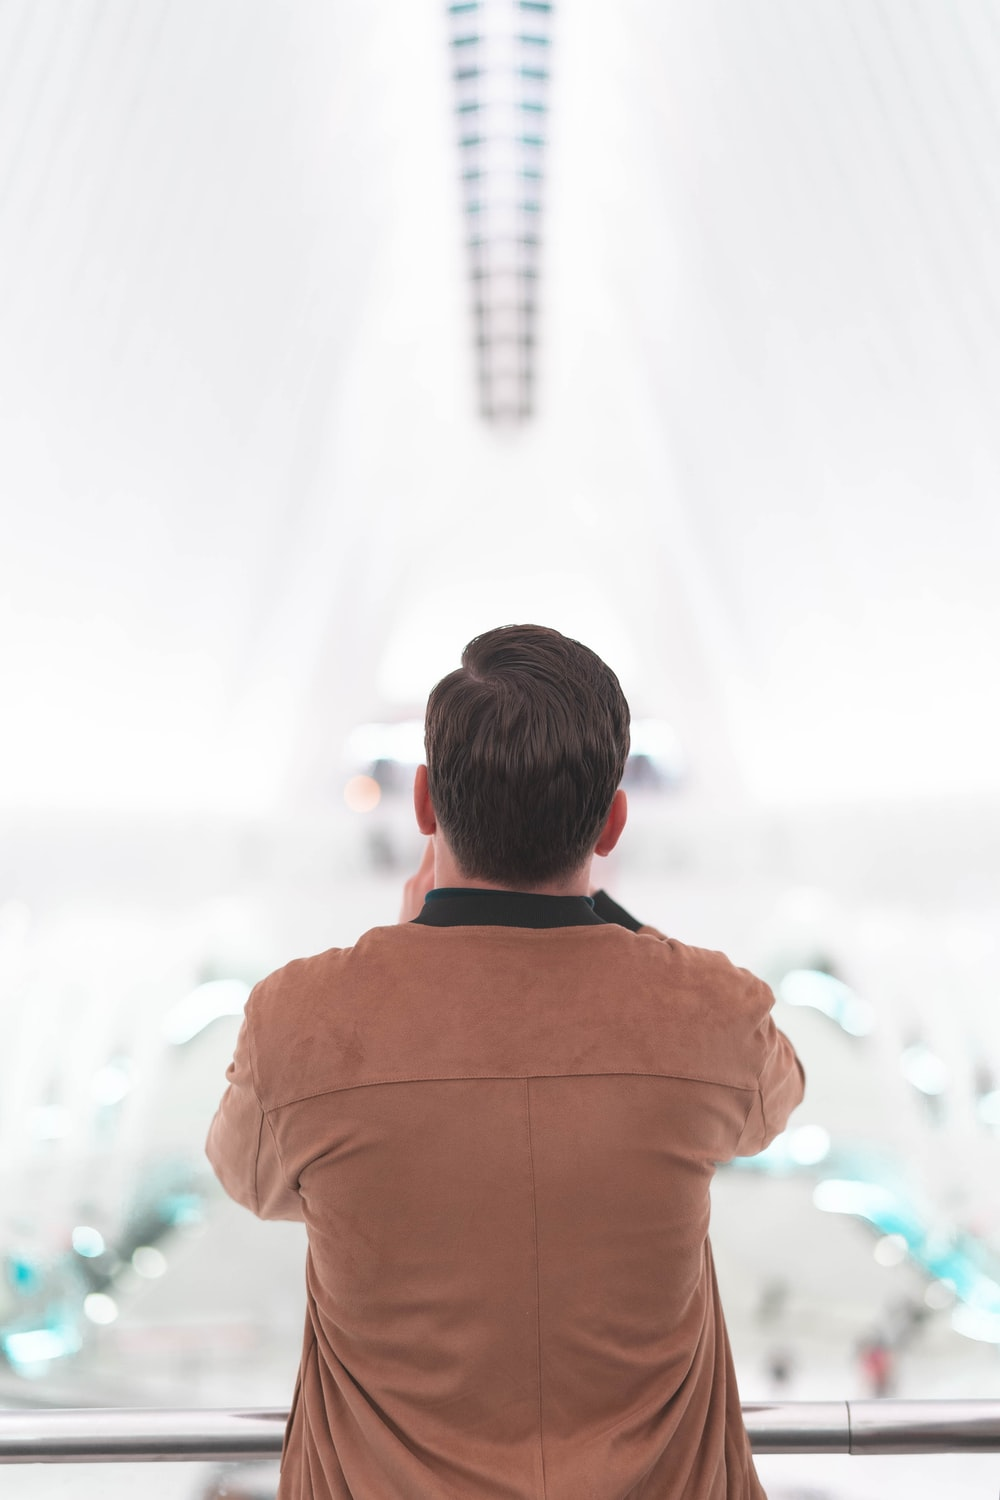 shallow focus photo of person in brown jacket